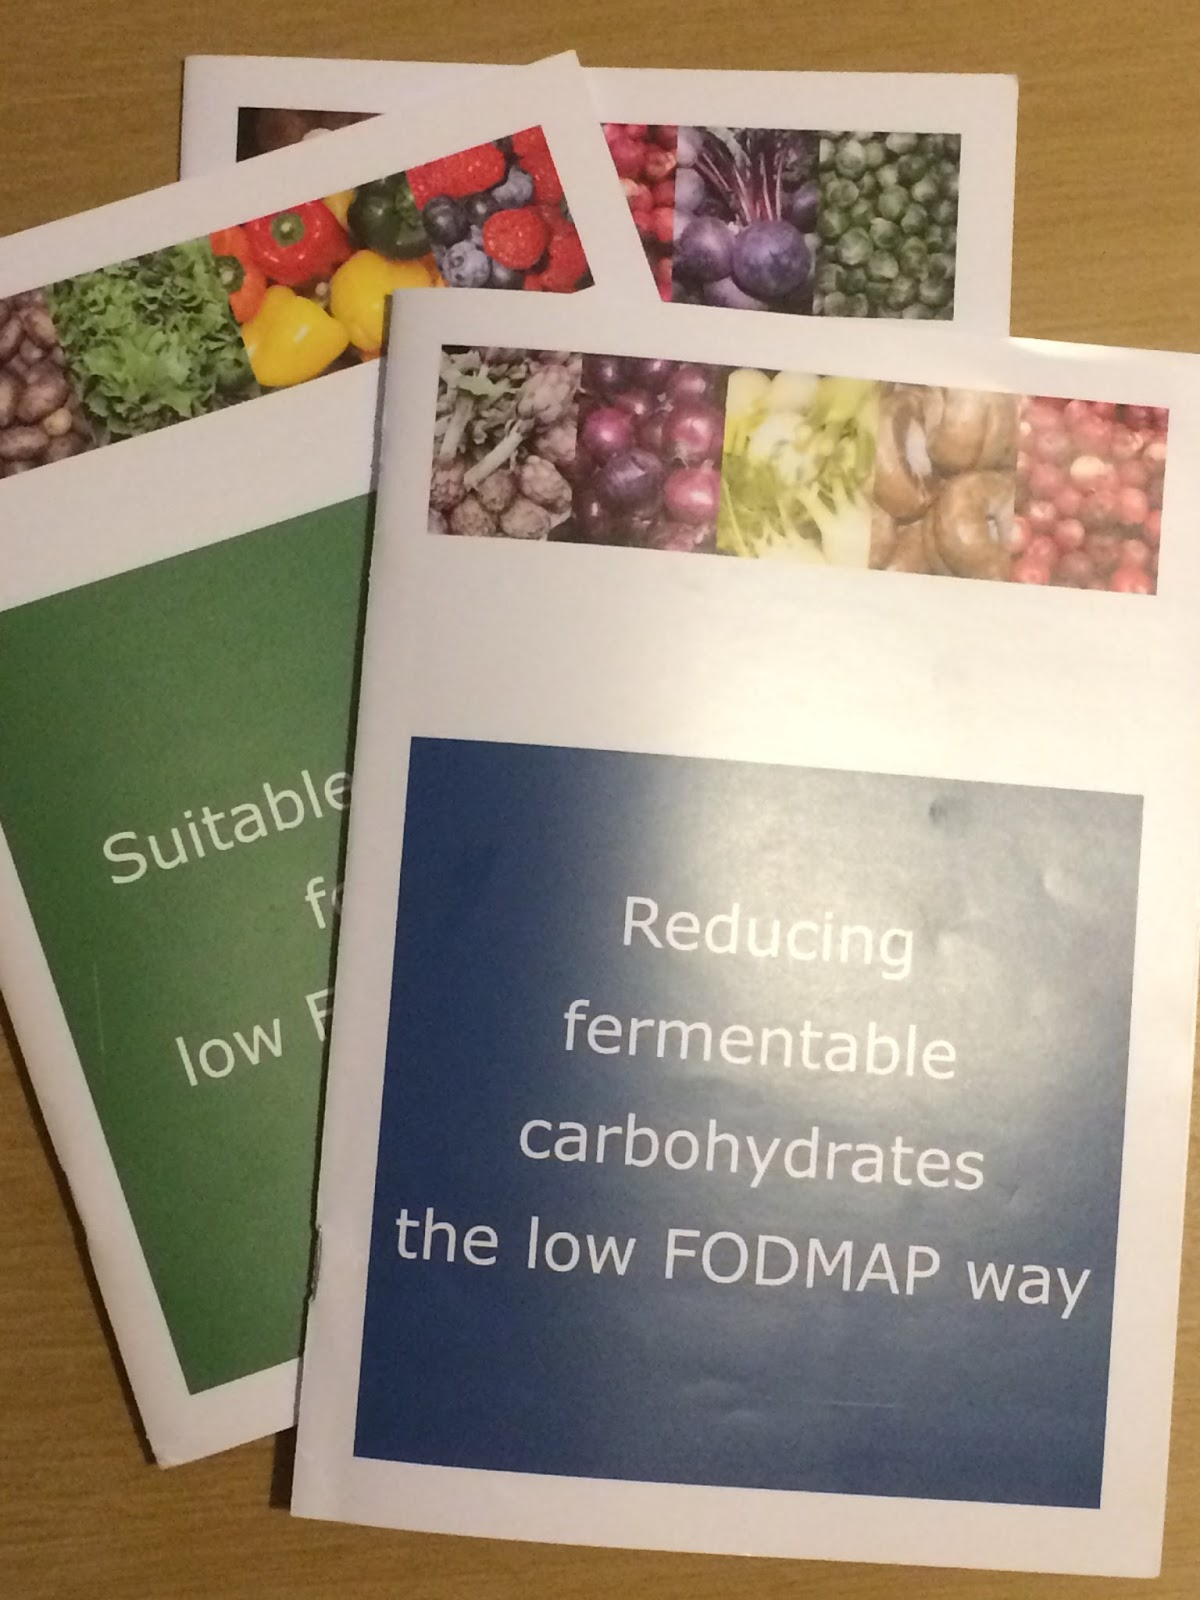 Kings college fodmap